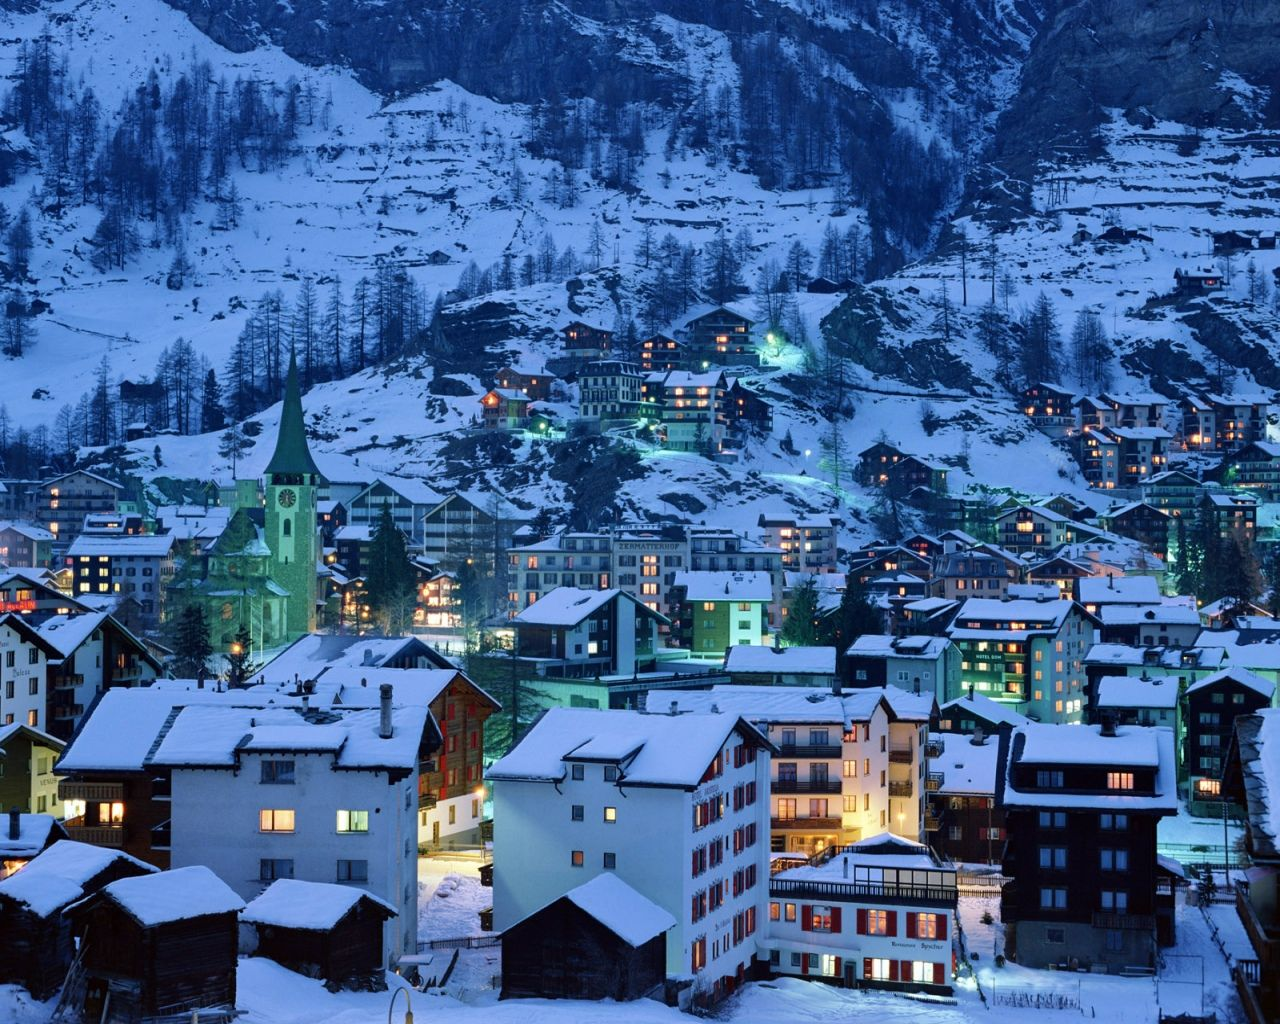 switzerland city snow - Google Search